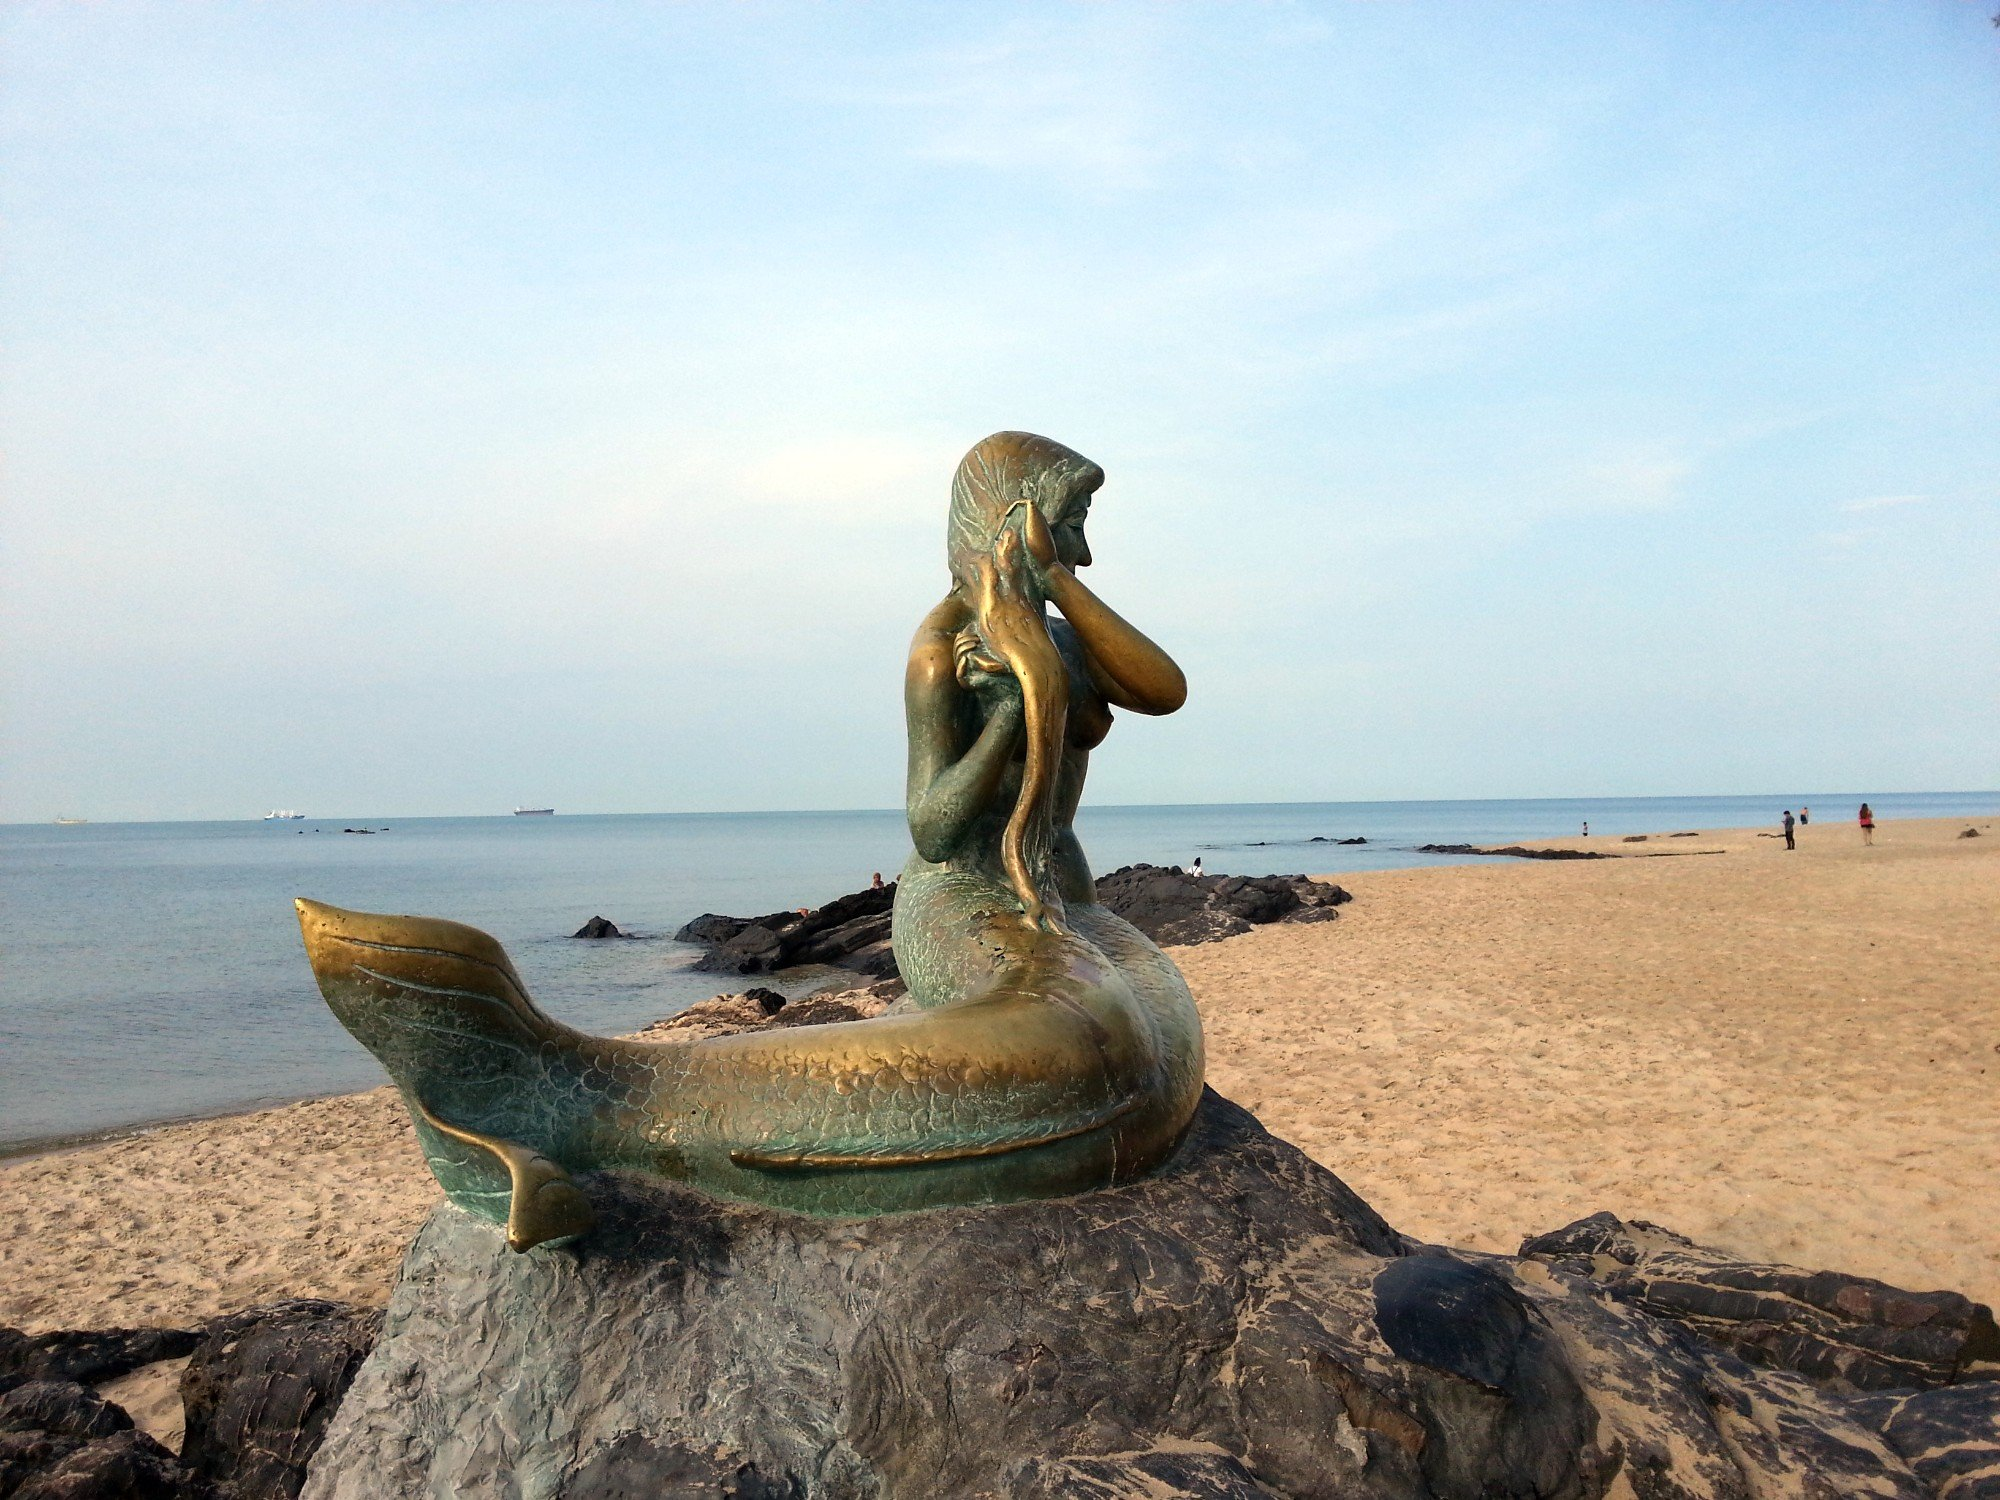 Mermaid statue on Samila Beach